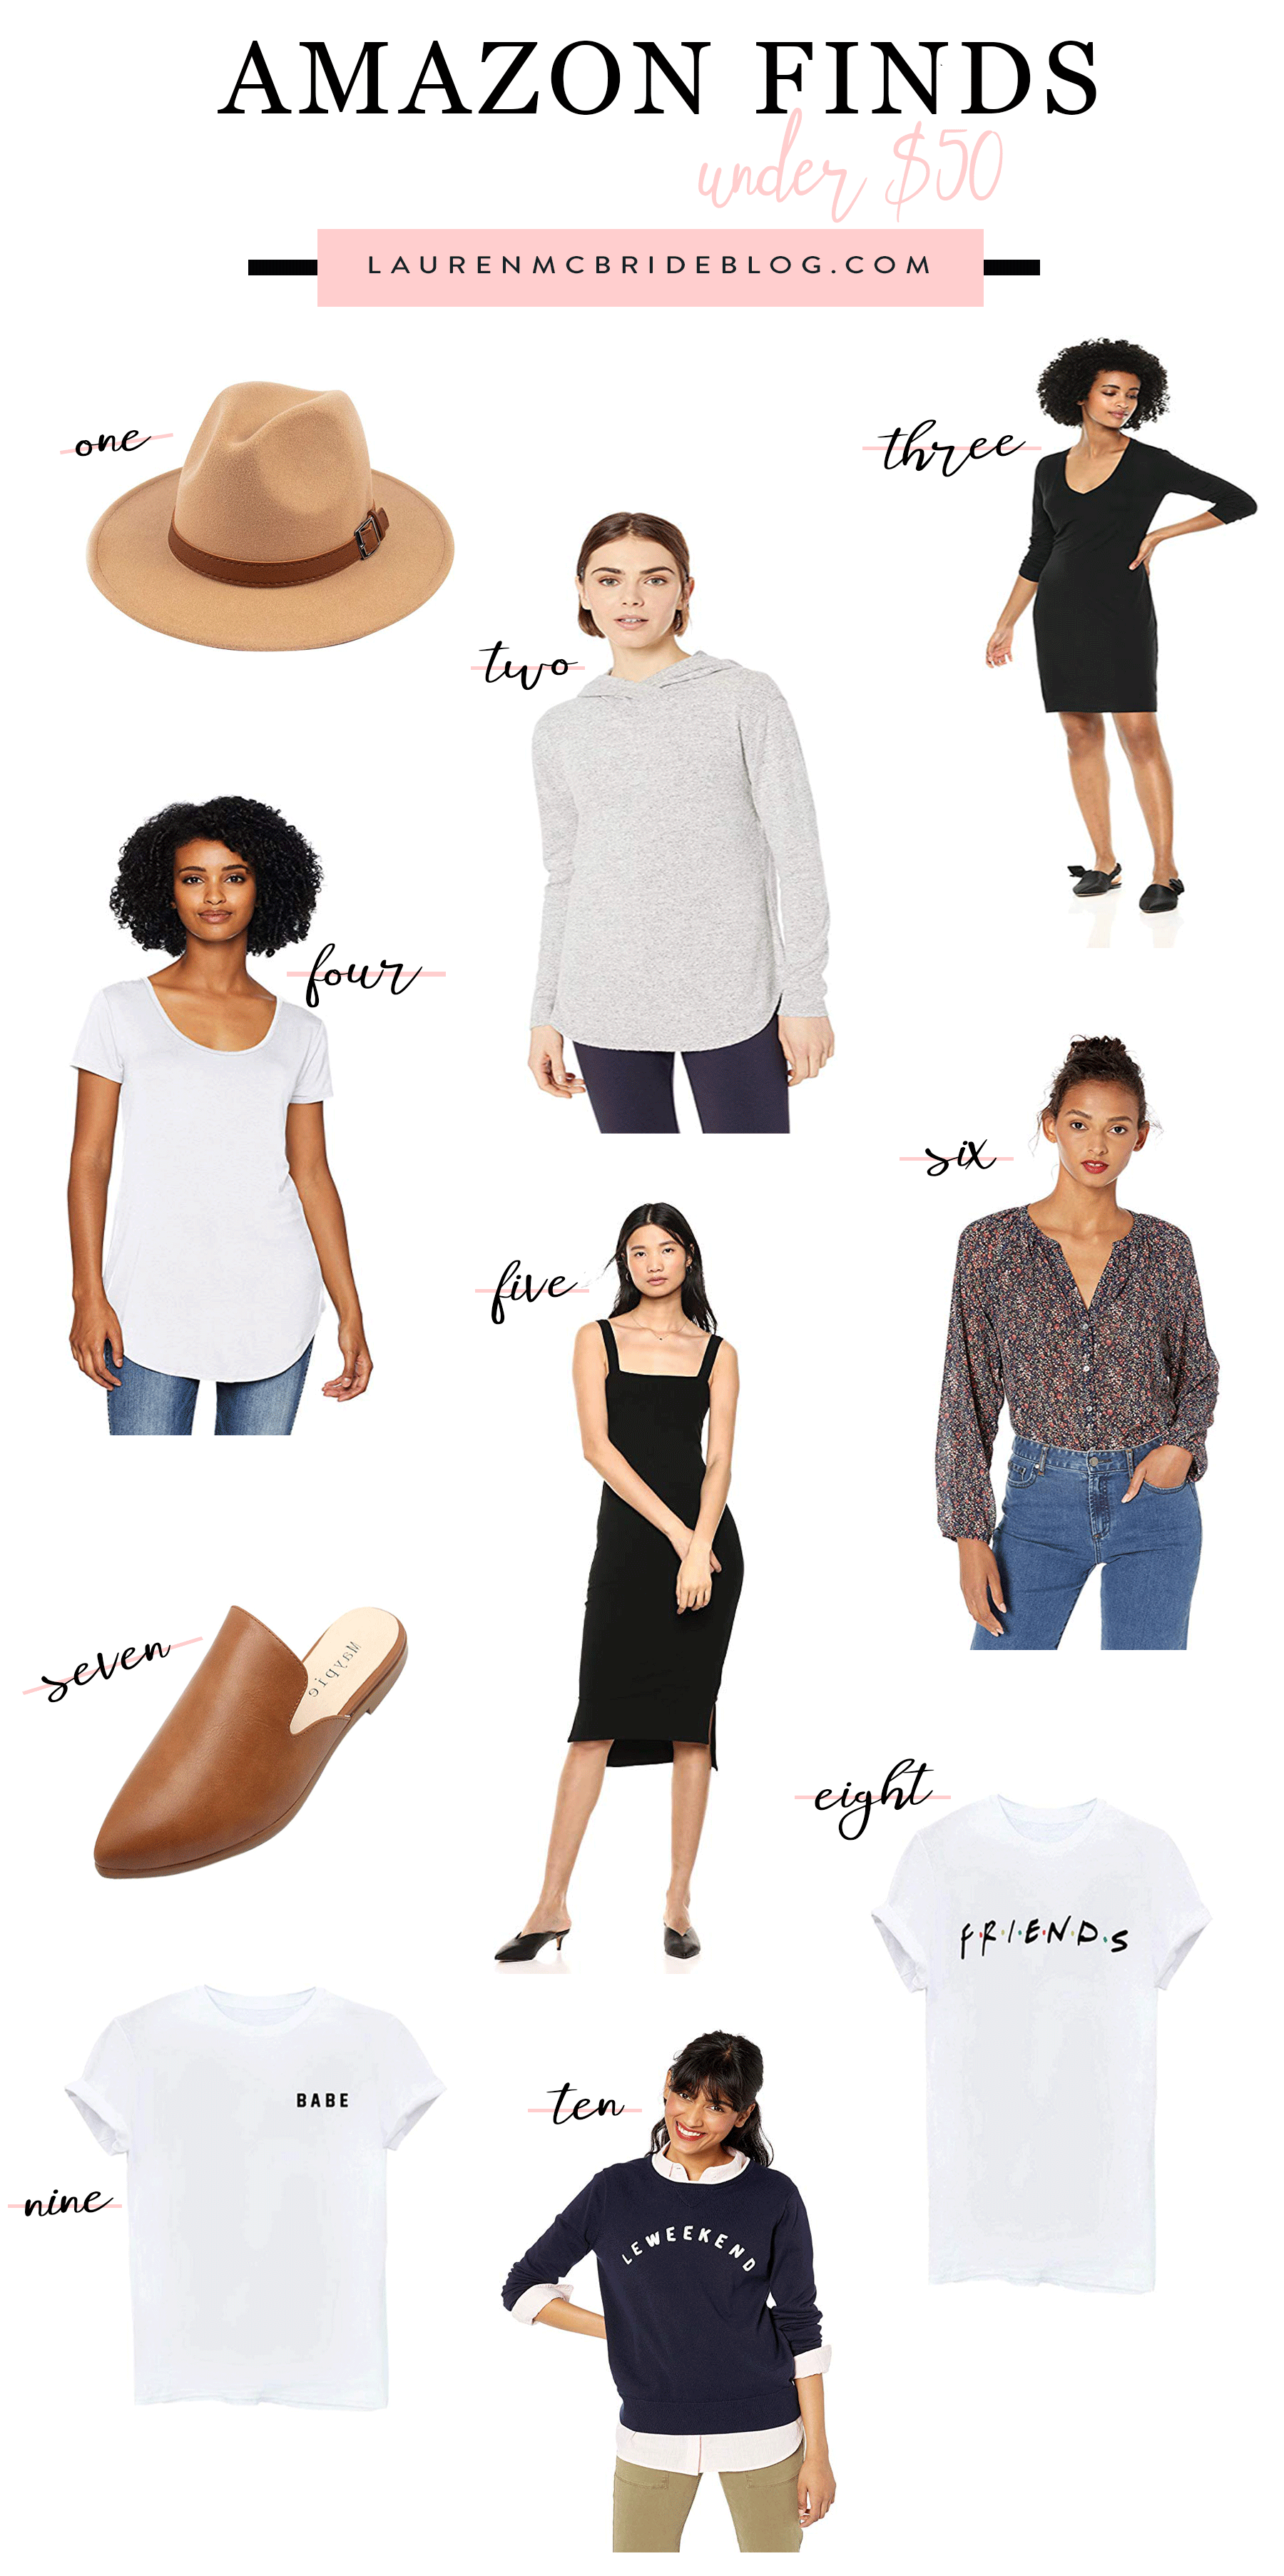 Connecticut Lifestyle Blogger, Lauren McBride Blog shares 10 Amazon Finds for Under $50